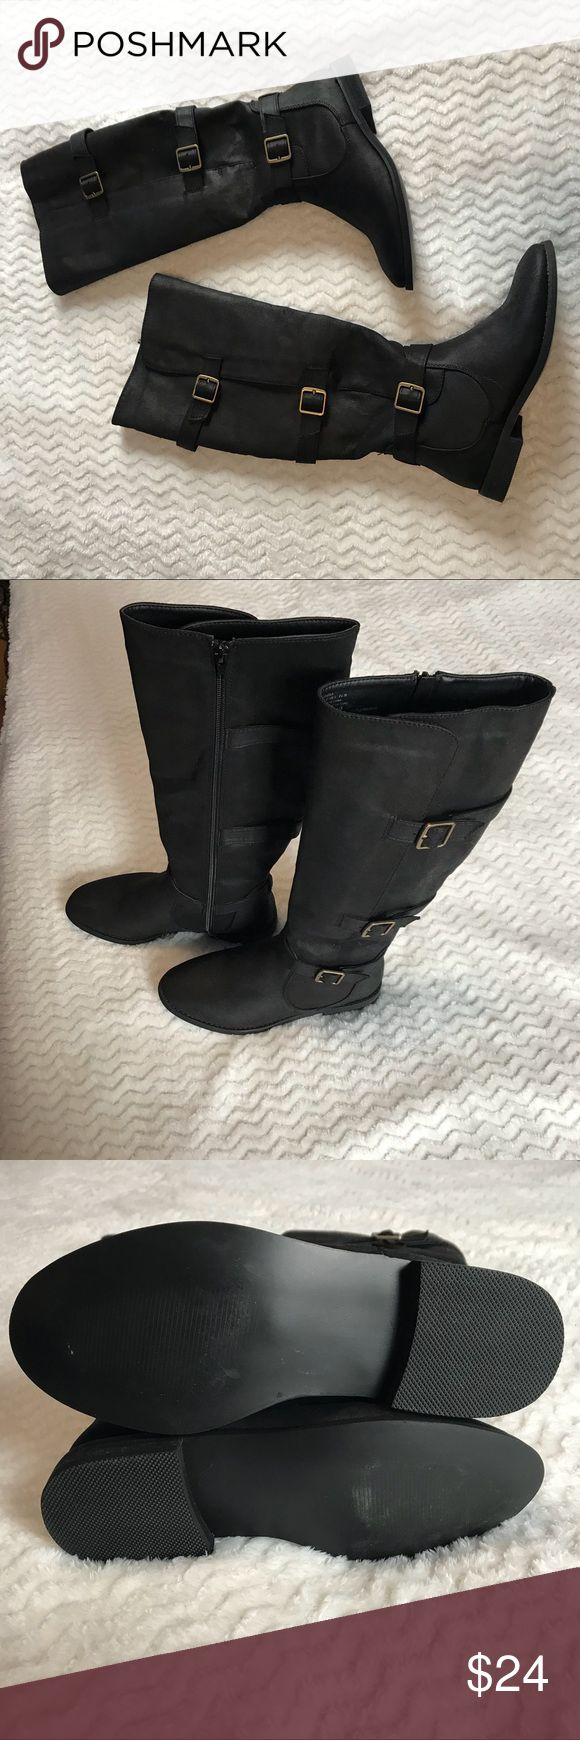 NWOT Shoe Dazzle Buckle Knee-High Boots Black Fabiola flat boot from Shoe Dazzle with buckle details. Never worn, new without box/tags. They're a size 7 but Shoe Dazzle shoes fit small, so these are more like a 6.5. Original price is $39.95. Shoe Dazzle Shoes